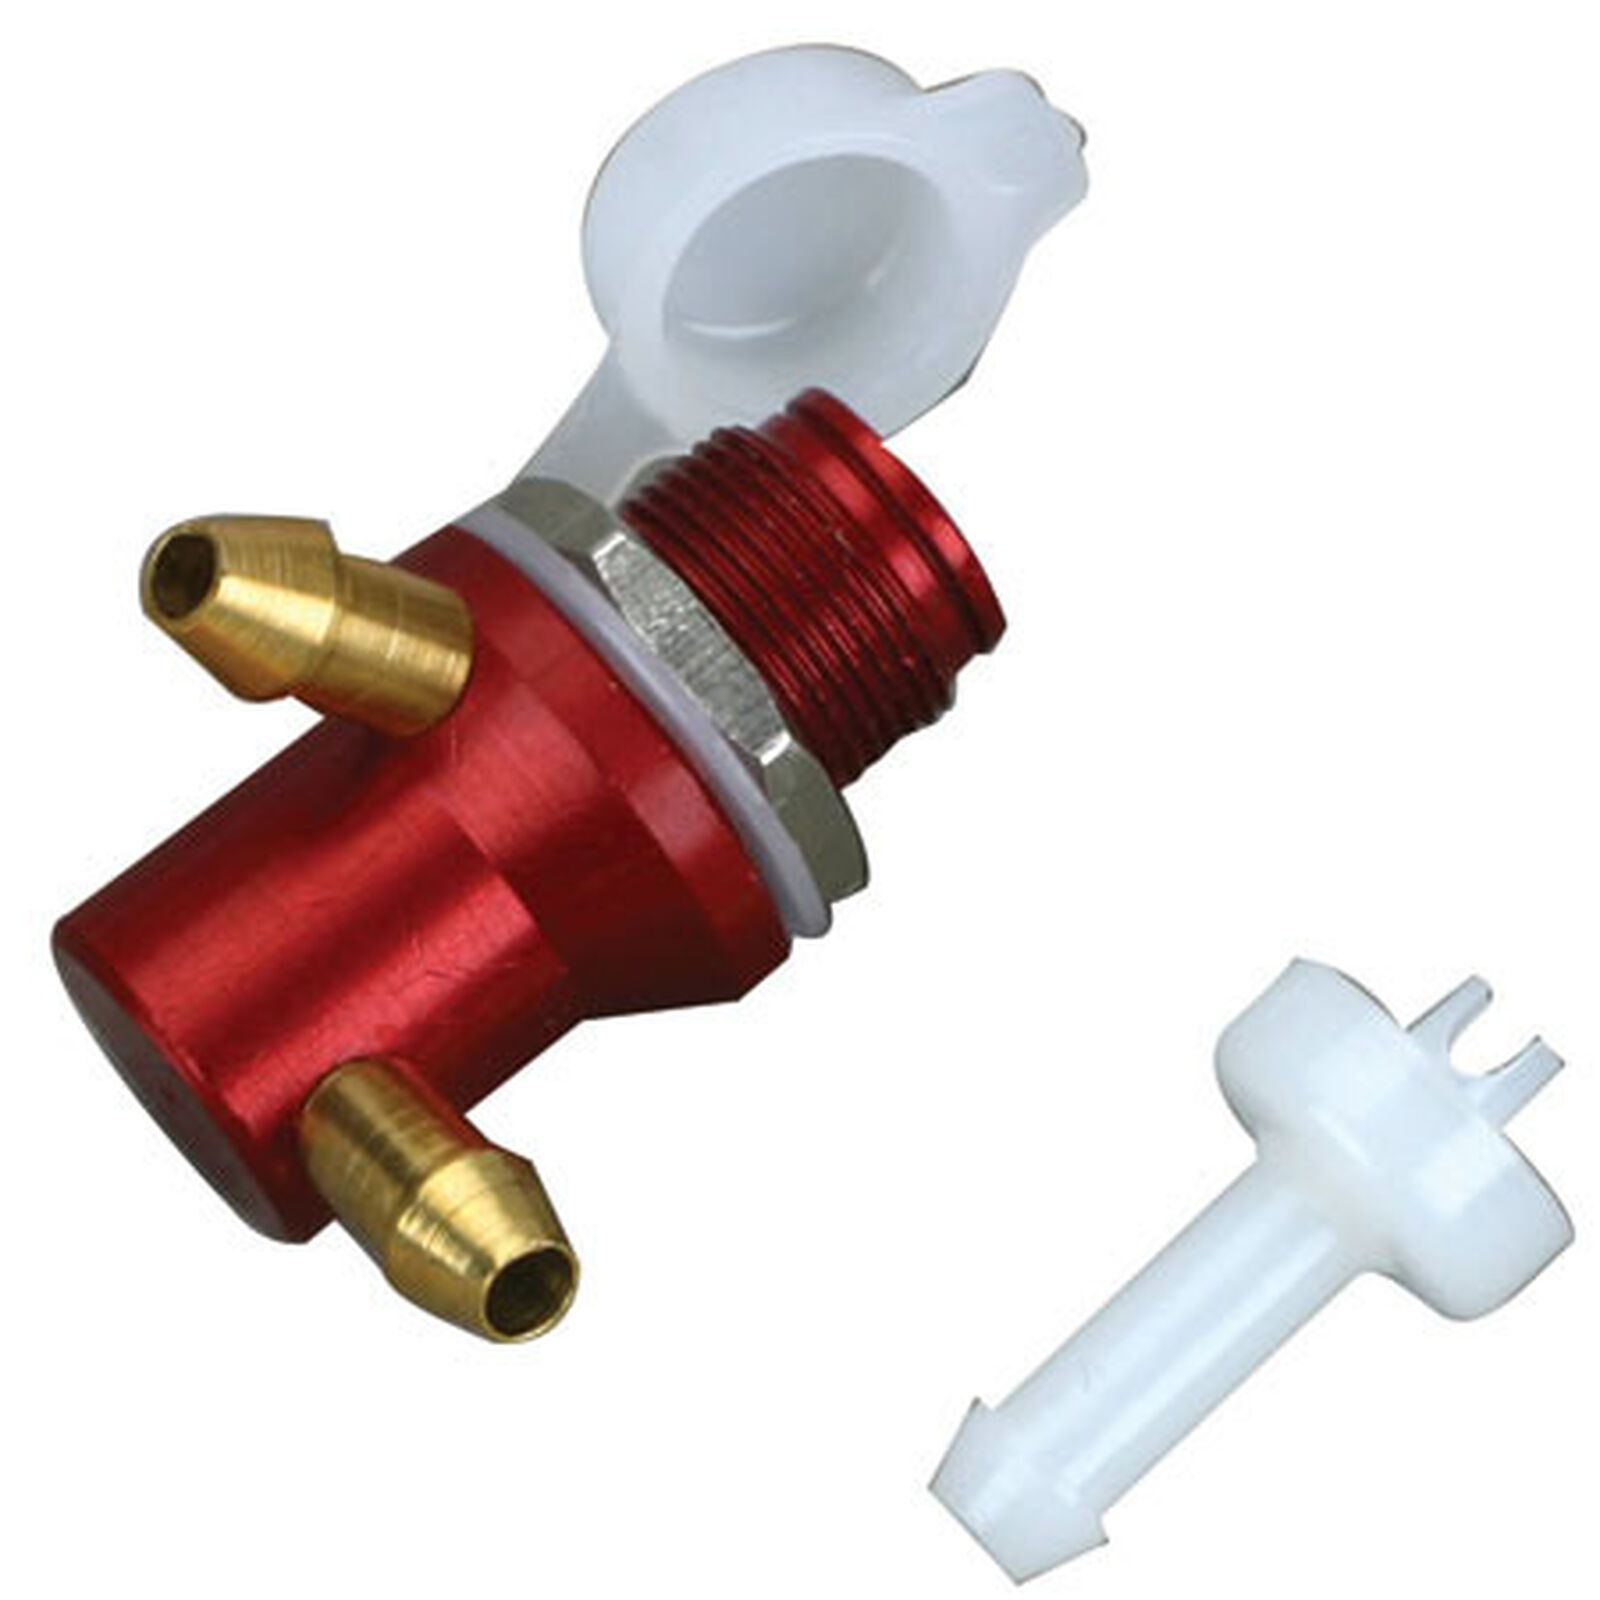 Large Scale Fuel Valve, Gas